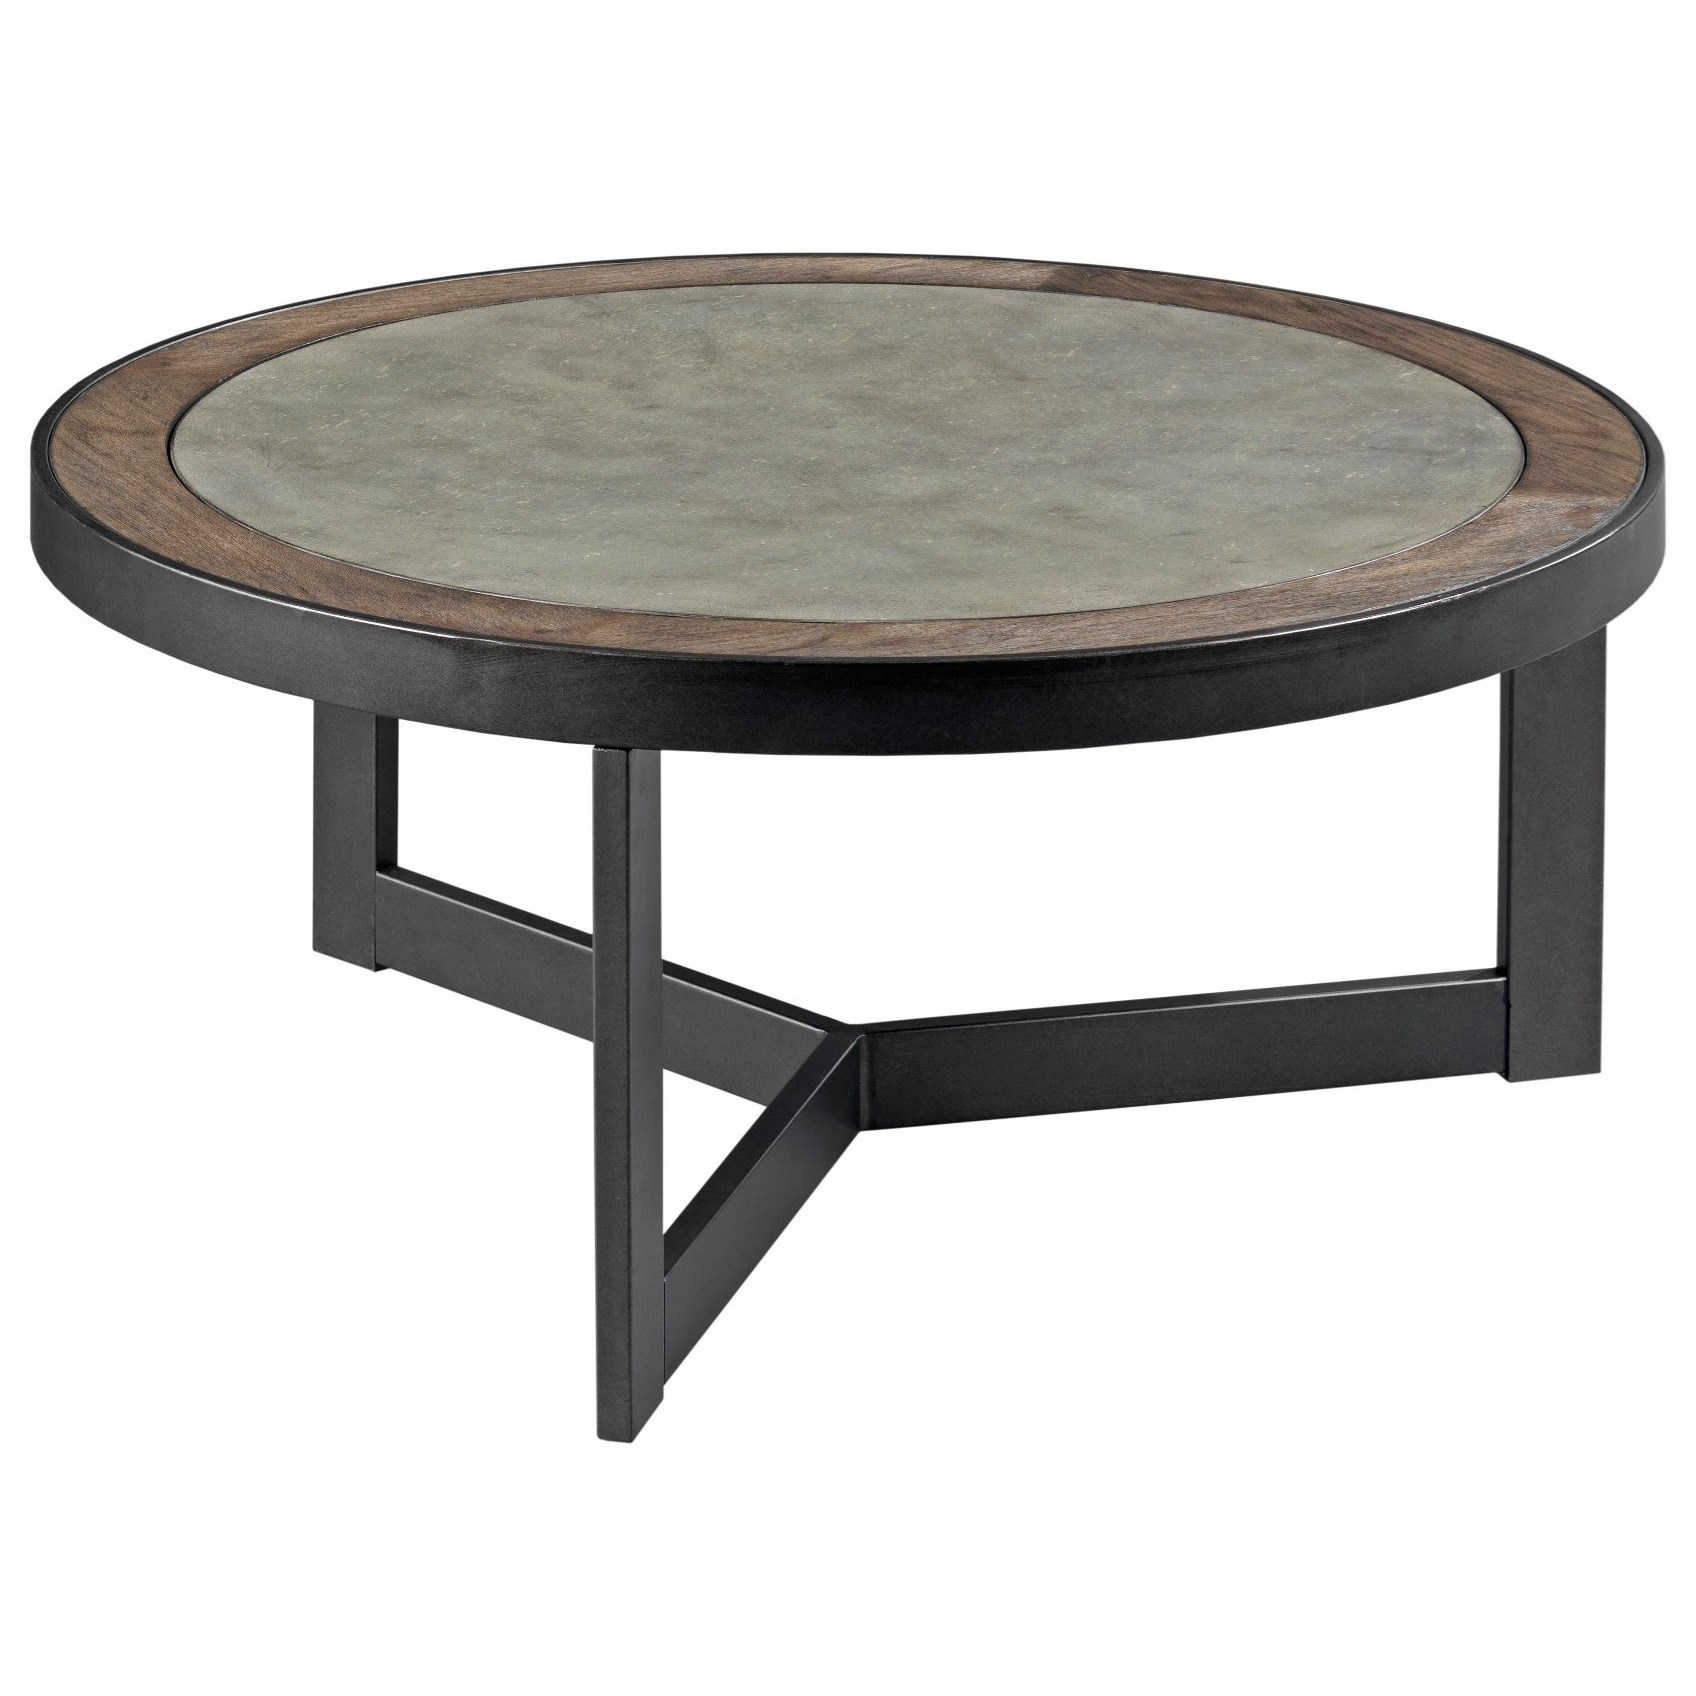 Graystone Round Cocktail Table by England at Pilgrim Furniture City